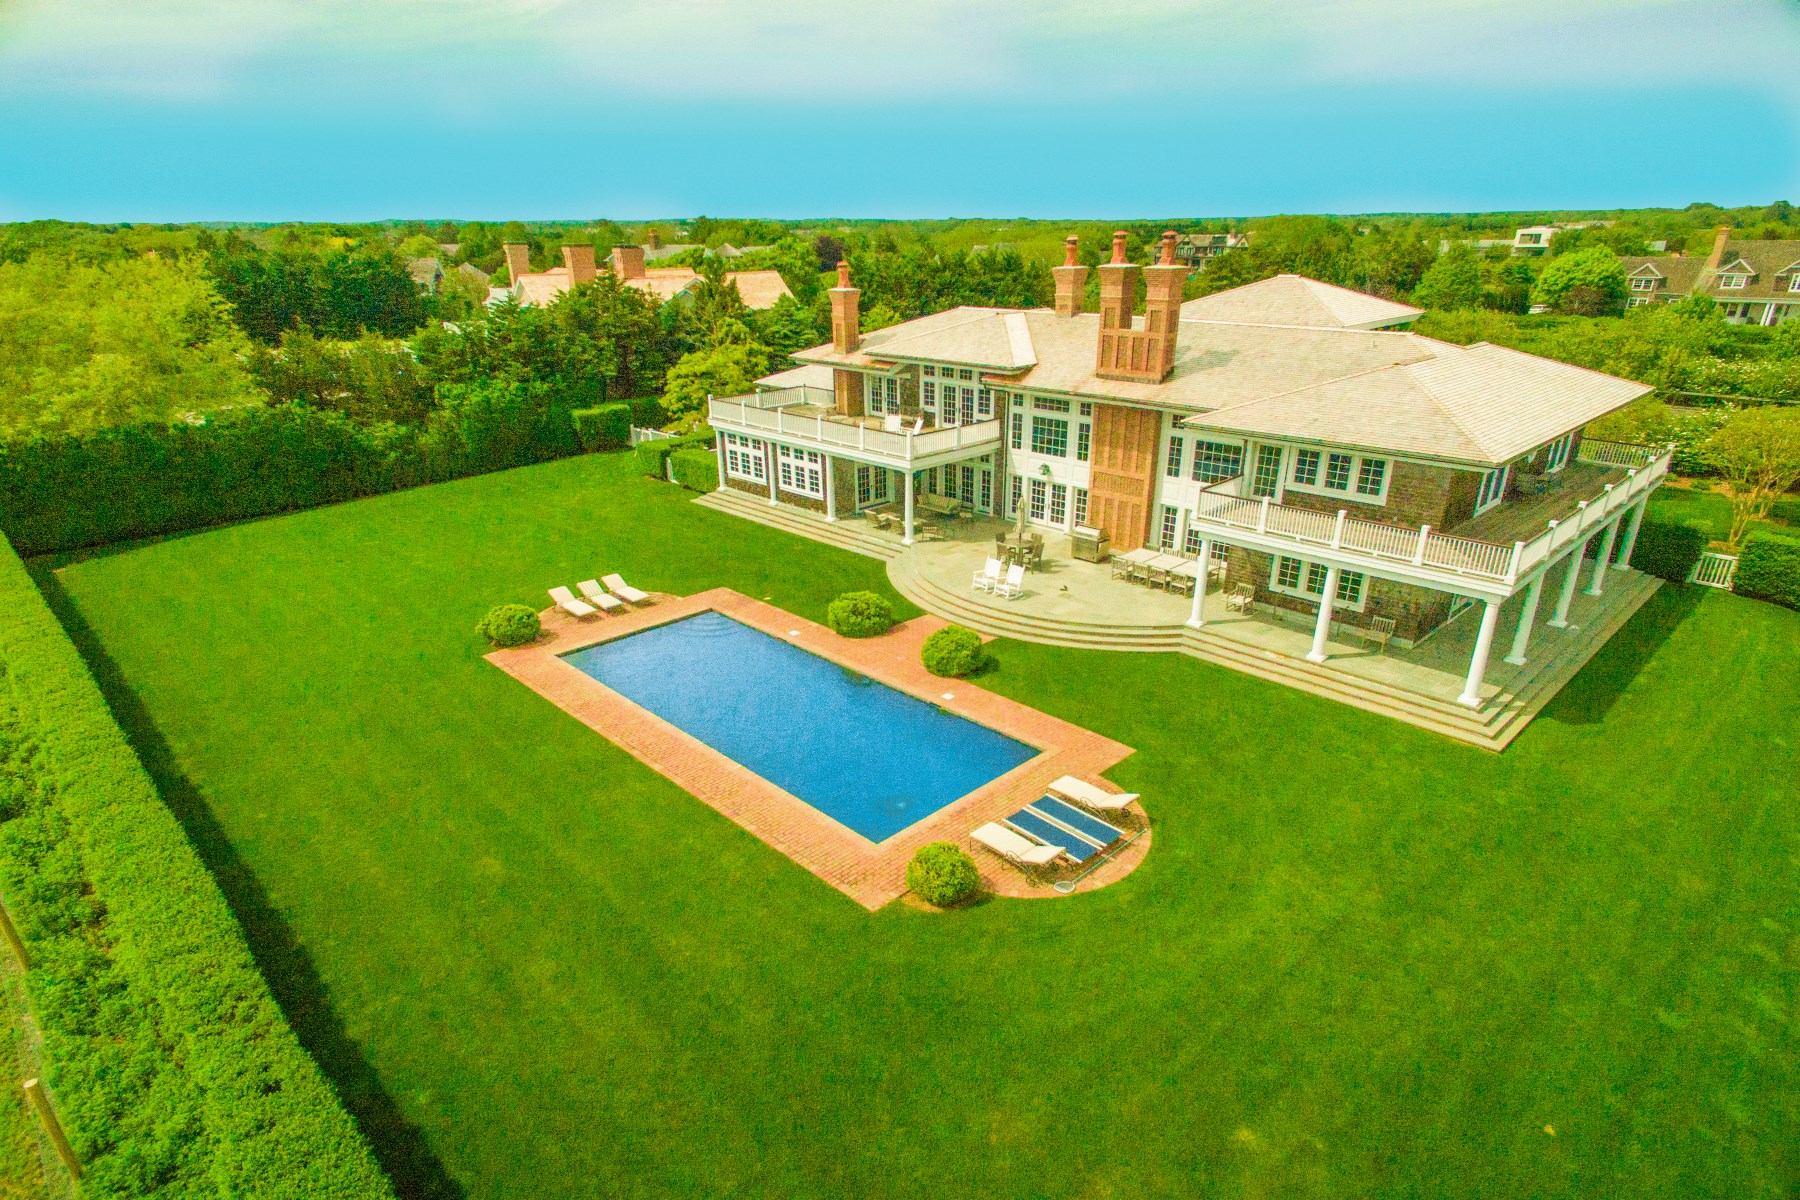 Single Family Home for Rent at Sagaponack Ocean Views 19 Sagg Pond Sagaponack, New York 11962 United States